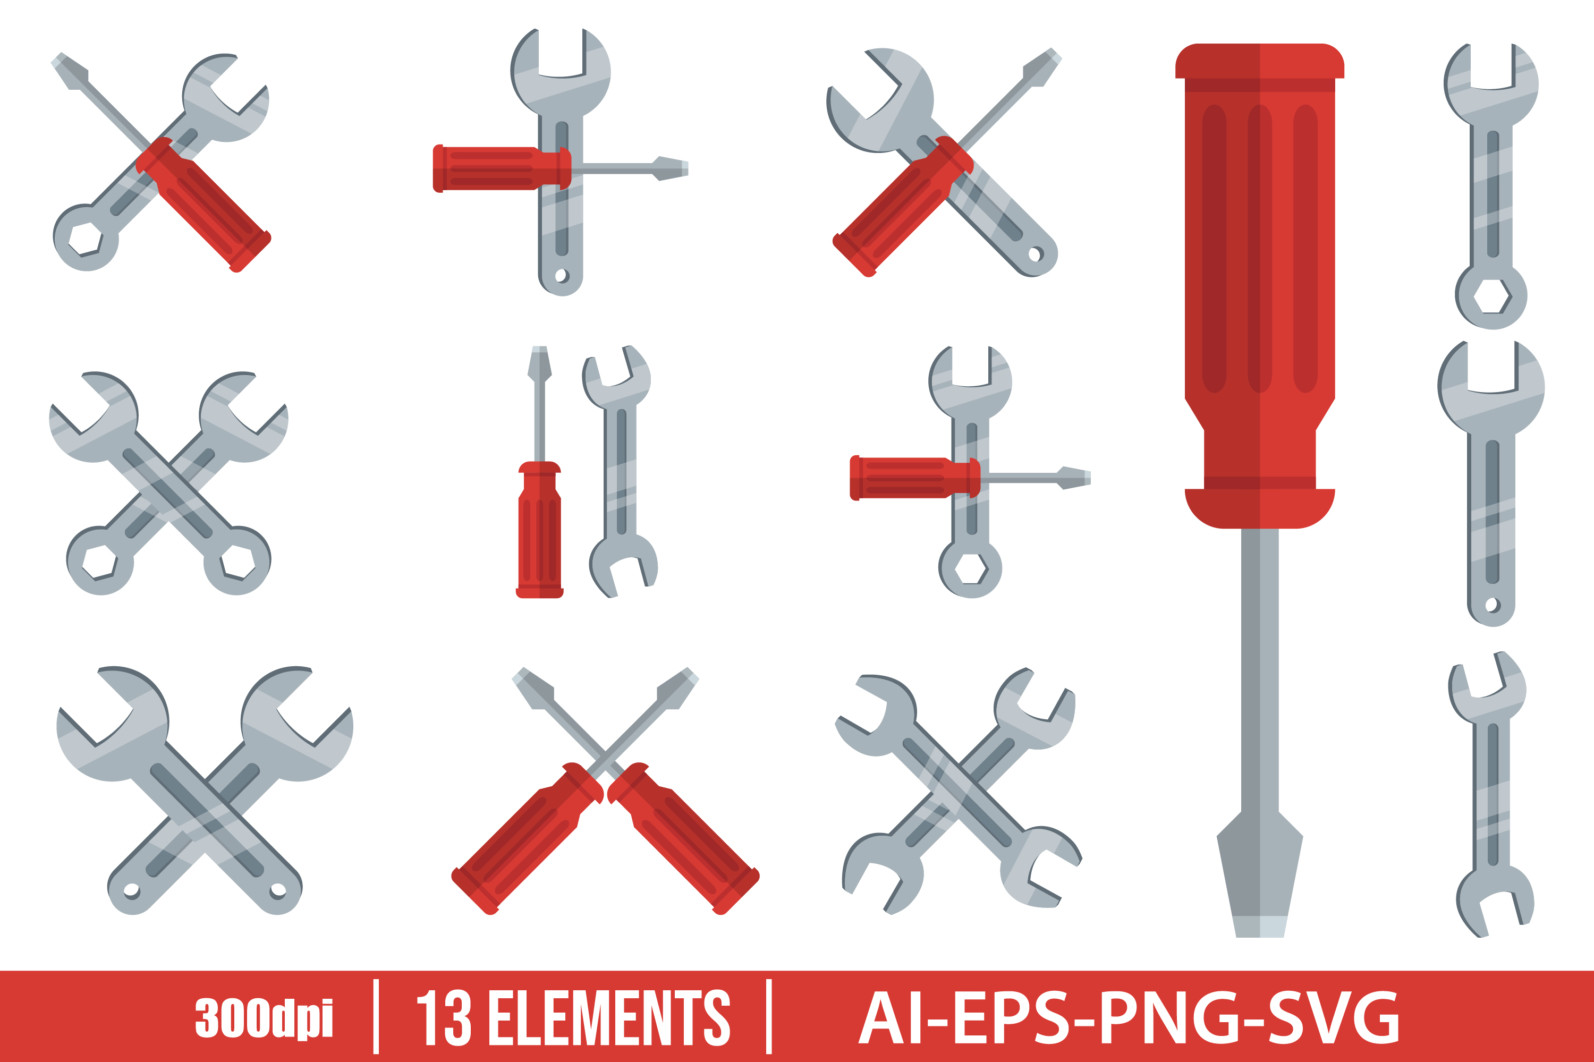 Wrench tool and screwdriver clipart vector design illustration. Tool set. Vector Clipart Print - KEY AND SCREWDRIVER scaled -